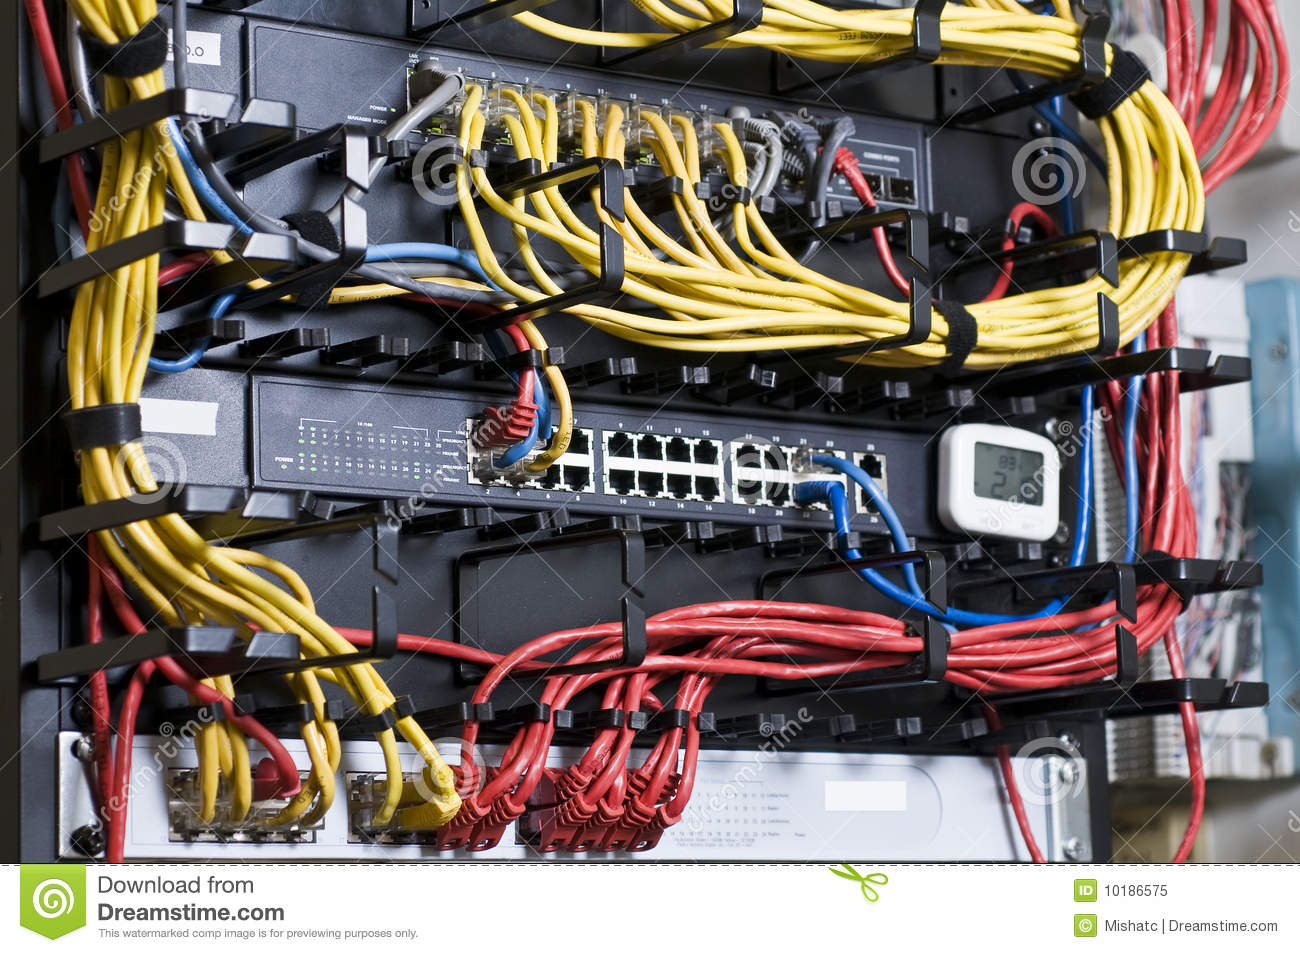 Wiring For Network Free Download Wiring Diagrams Pictures Wiring